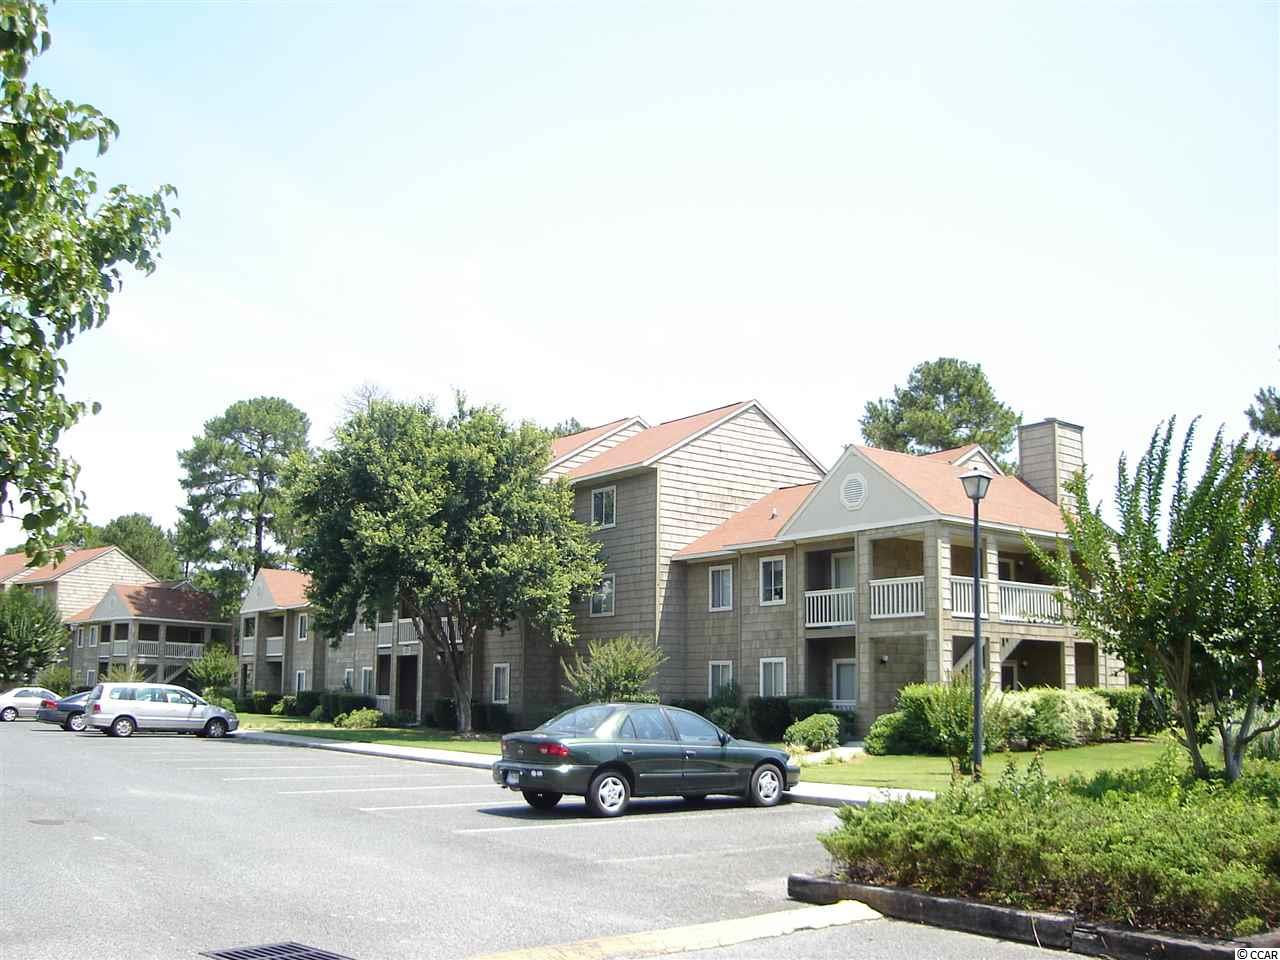 NICE 3RD FLOOR 1BR/1BA UNIT AT THE VERY EXCLUSIVE MYRTLE GREENS CONDOMINIUM COMMUNITY. QUIET SETTING. CLOSE TO UNIVERSITY AND HOSPITAL. CONVENIENT TO SHOPPING AND ENTERTAINMENT.